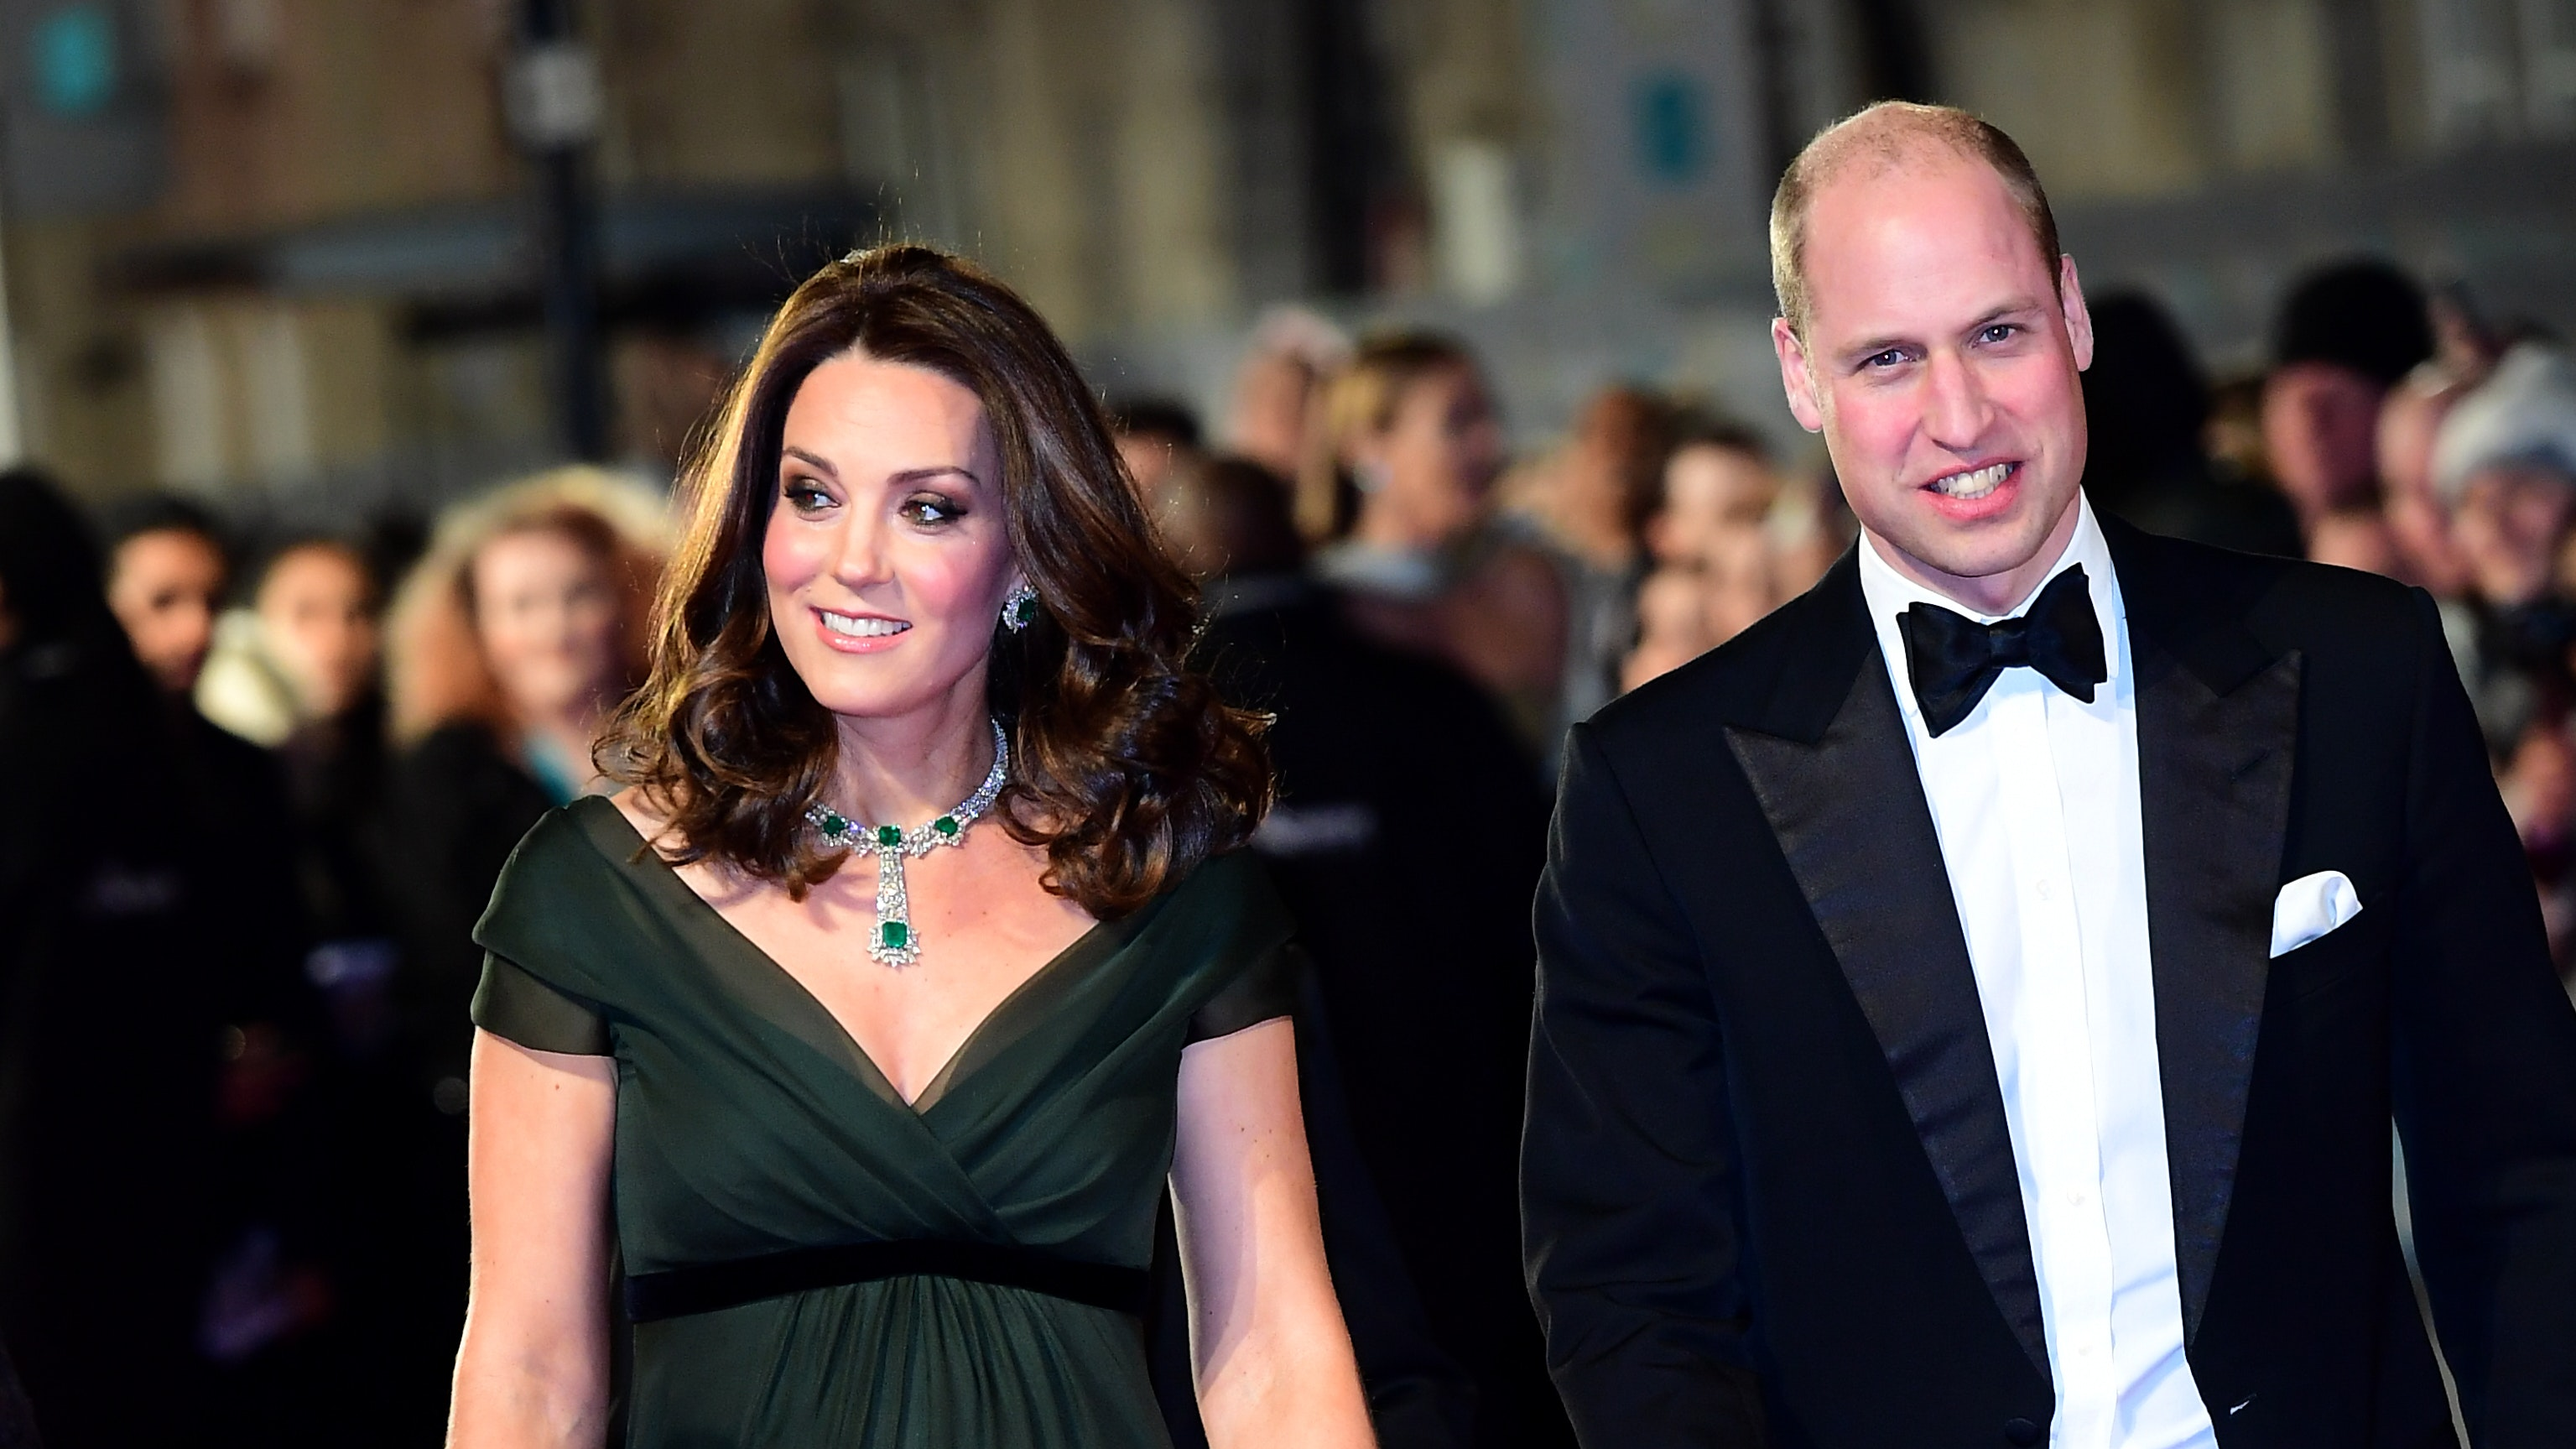 Duchess of Cambridge Kate finds muted middle way